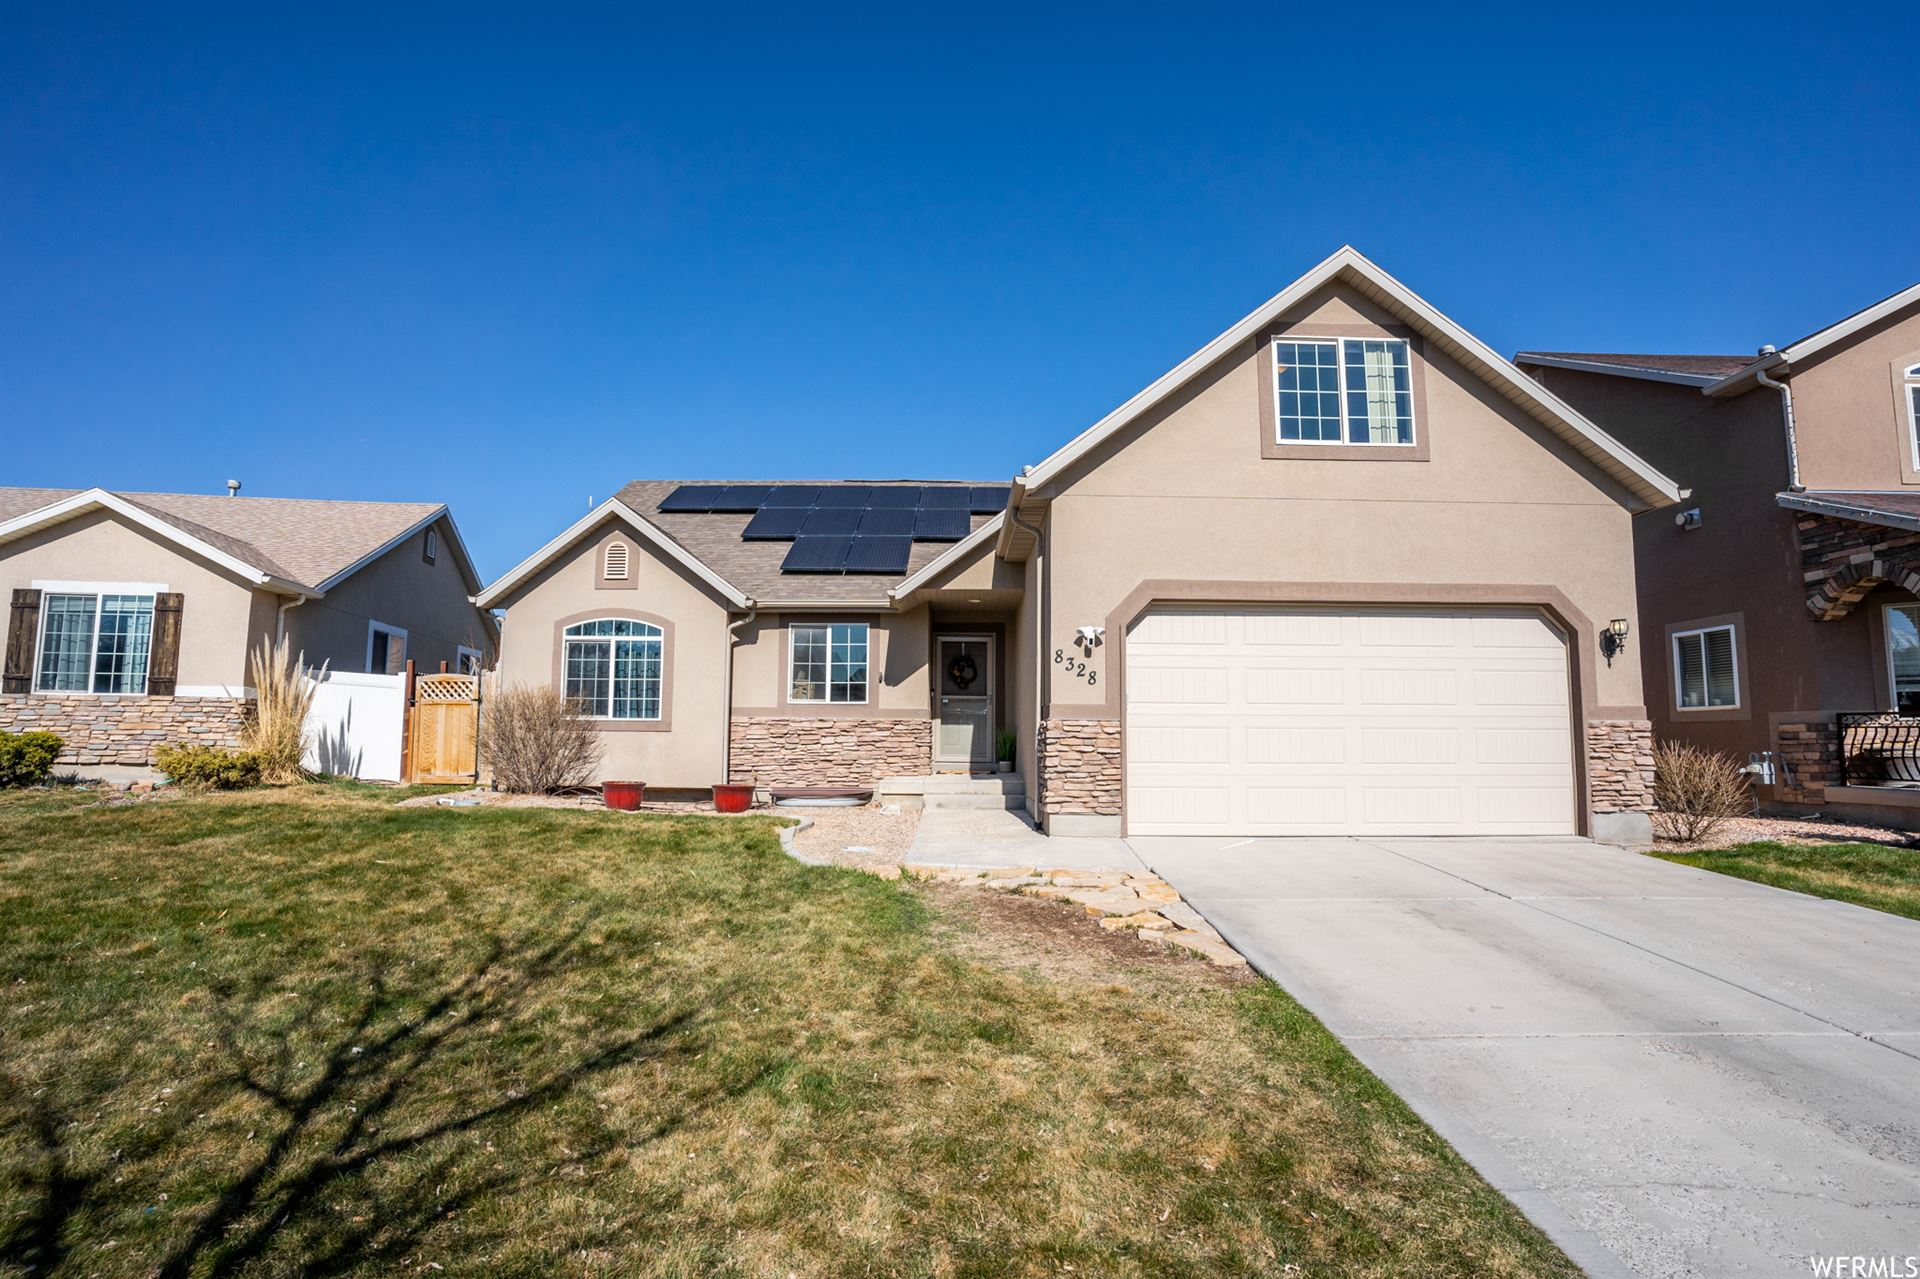 Photo of 8328 N ROYAL ABERDEEN E RD, Eagle Mountain, UT 84005 (MLS # 1732136)